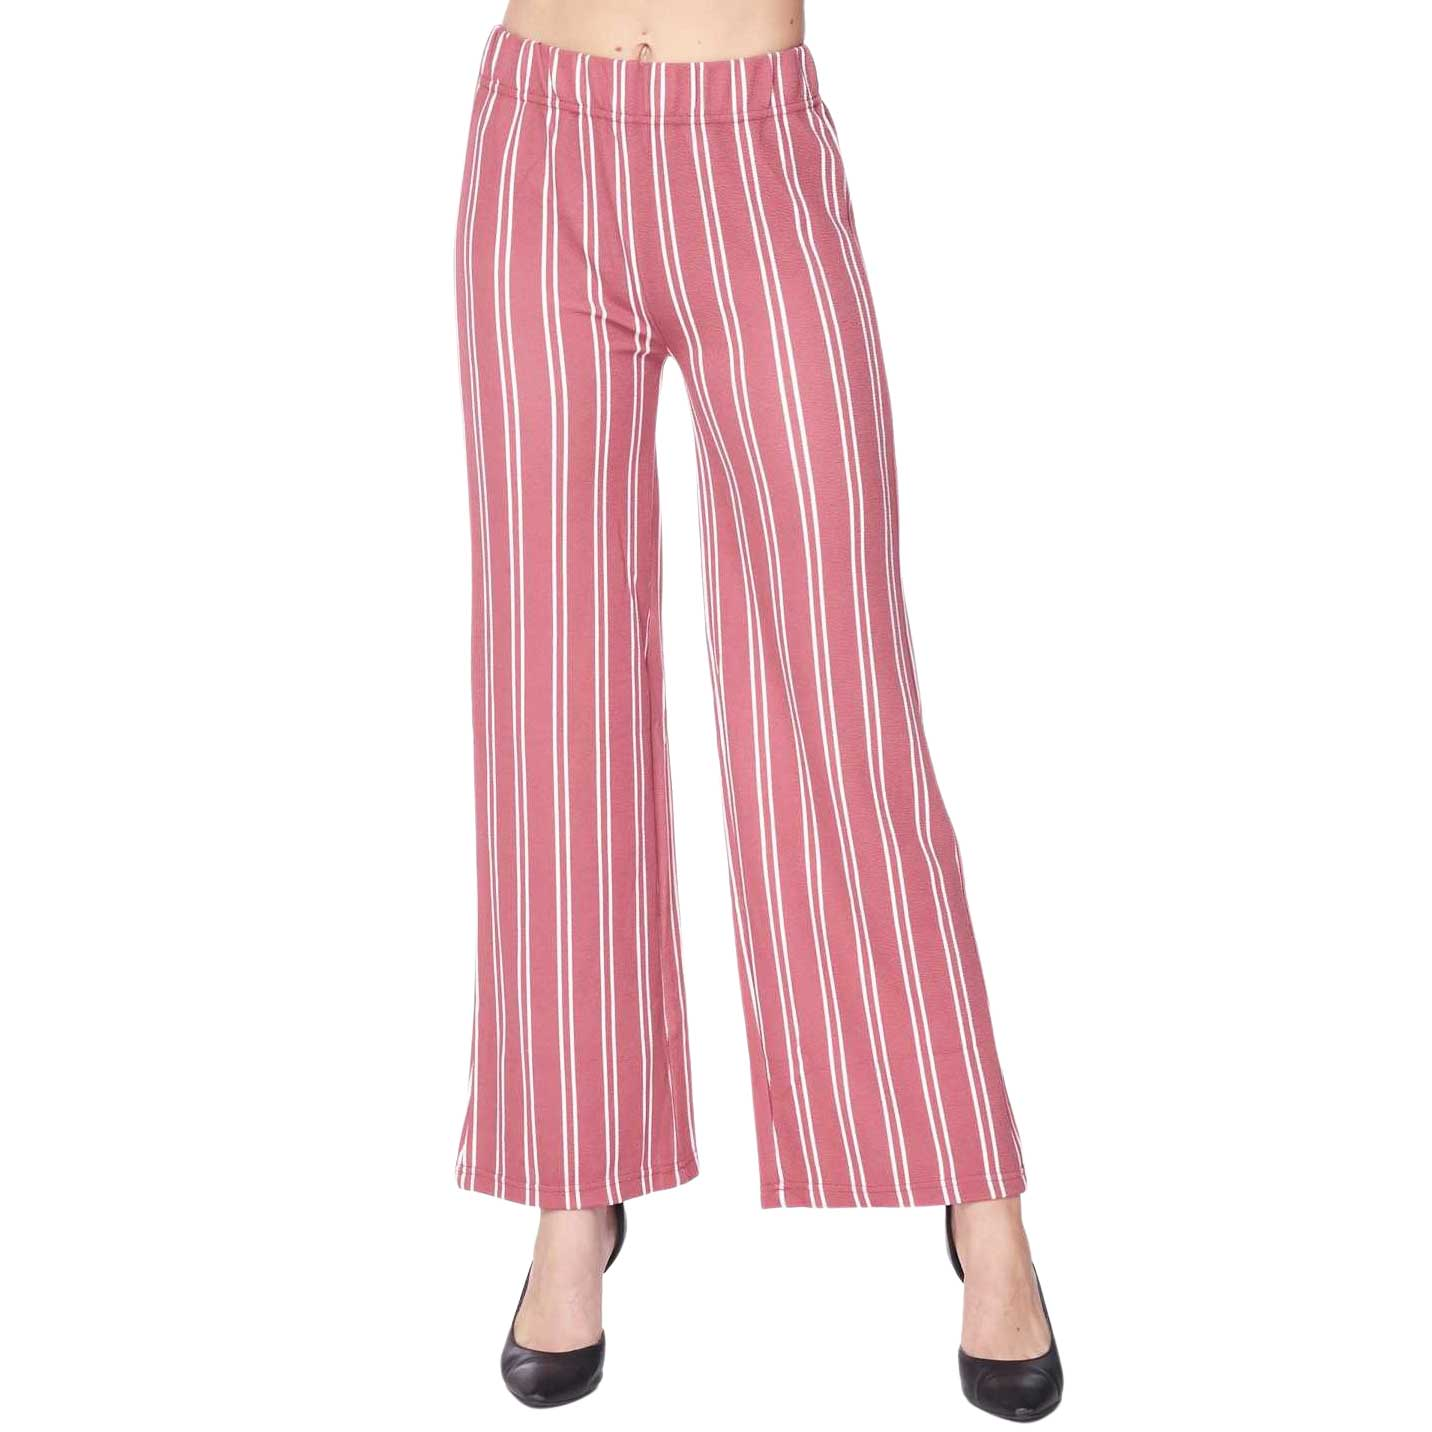 Pants - Striped 1926